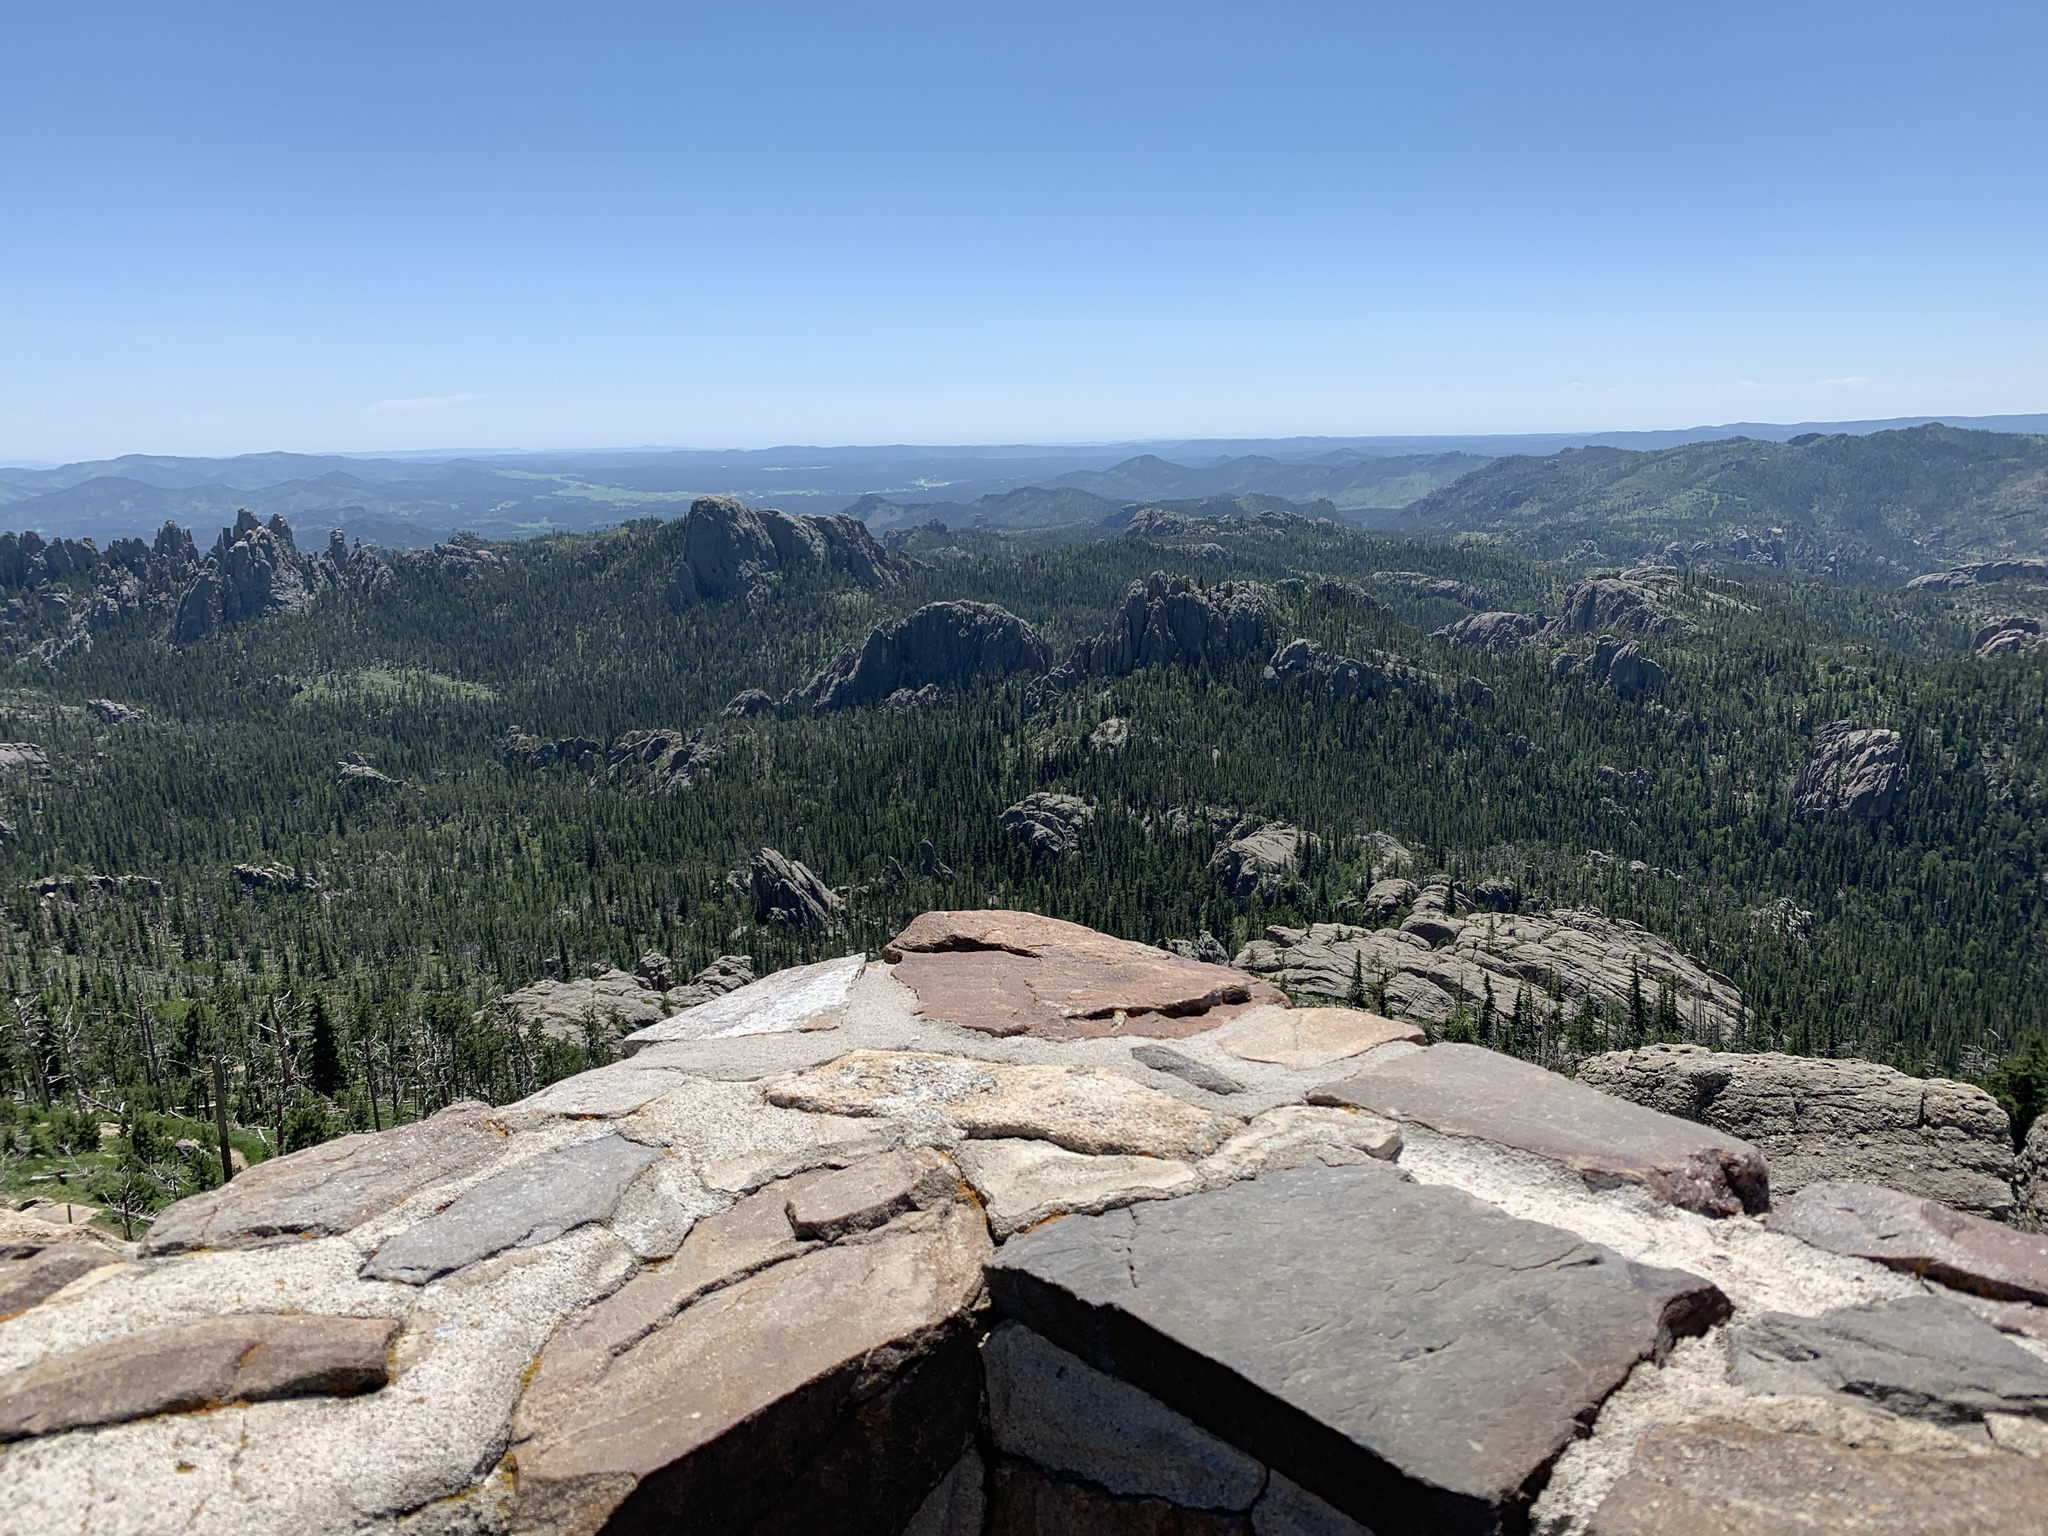 View of the Black Hills and Needles from Black Elk Peak.